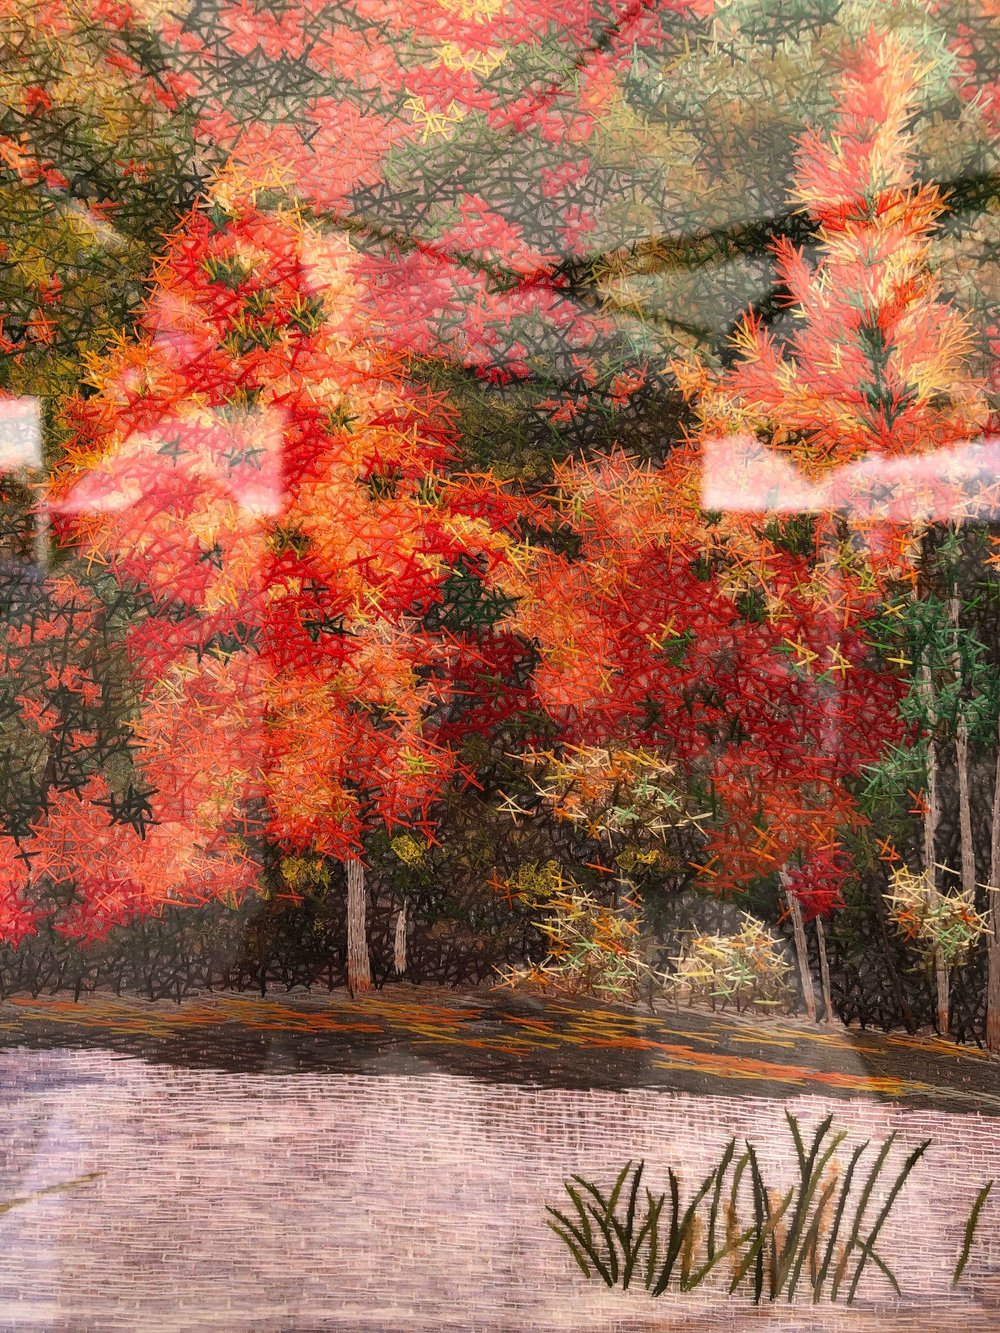 Embroidery artwork of artist, Yan Inlow, seen at The Woodlands Waterway Art Festival